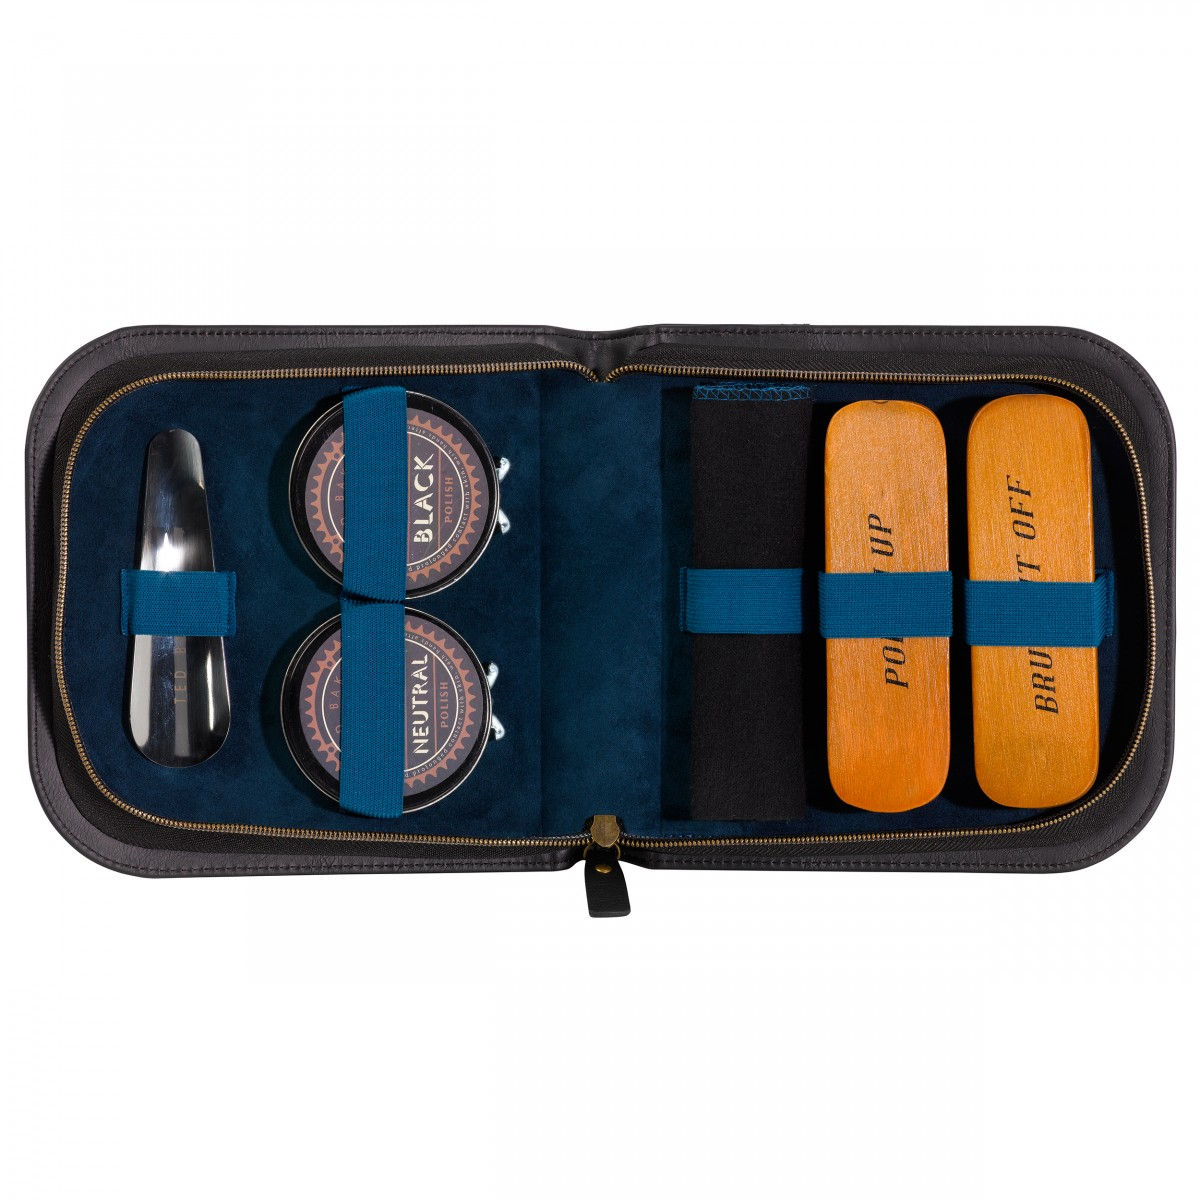 ted baker shoe shine kit mens accessories fathers day gifts. Black Bedroom Furniture Sets. Home Design Ideas